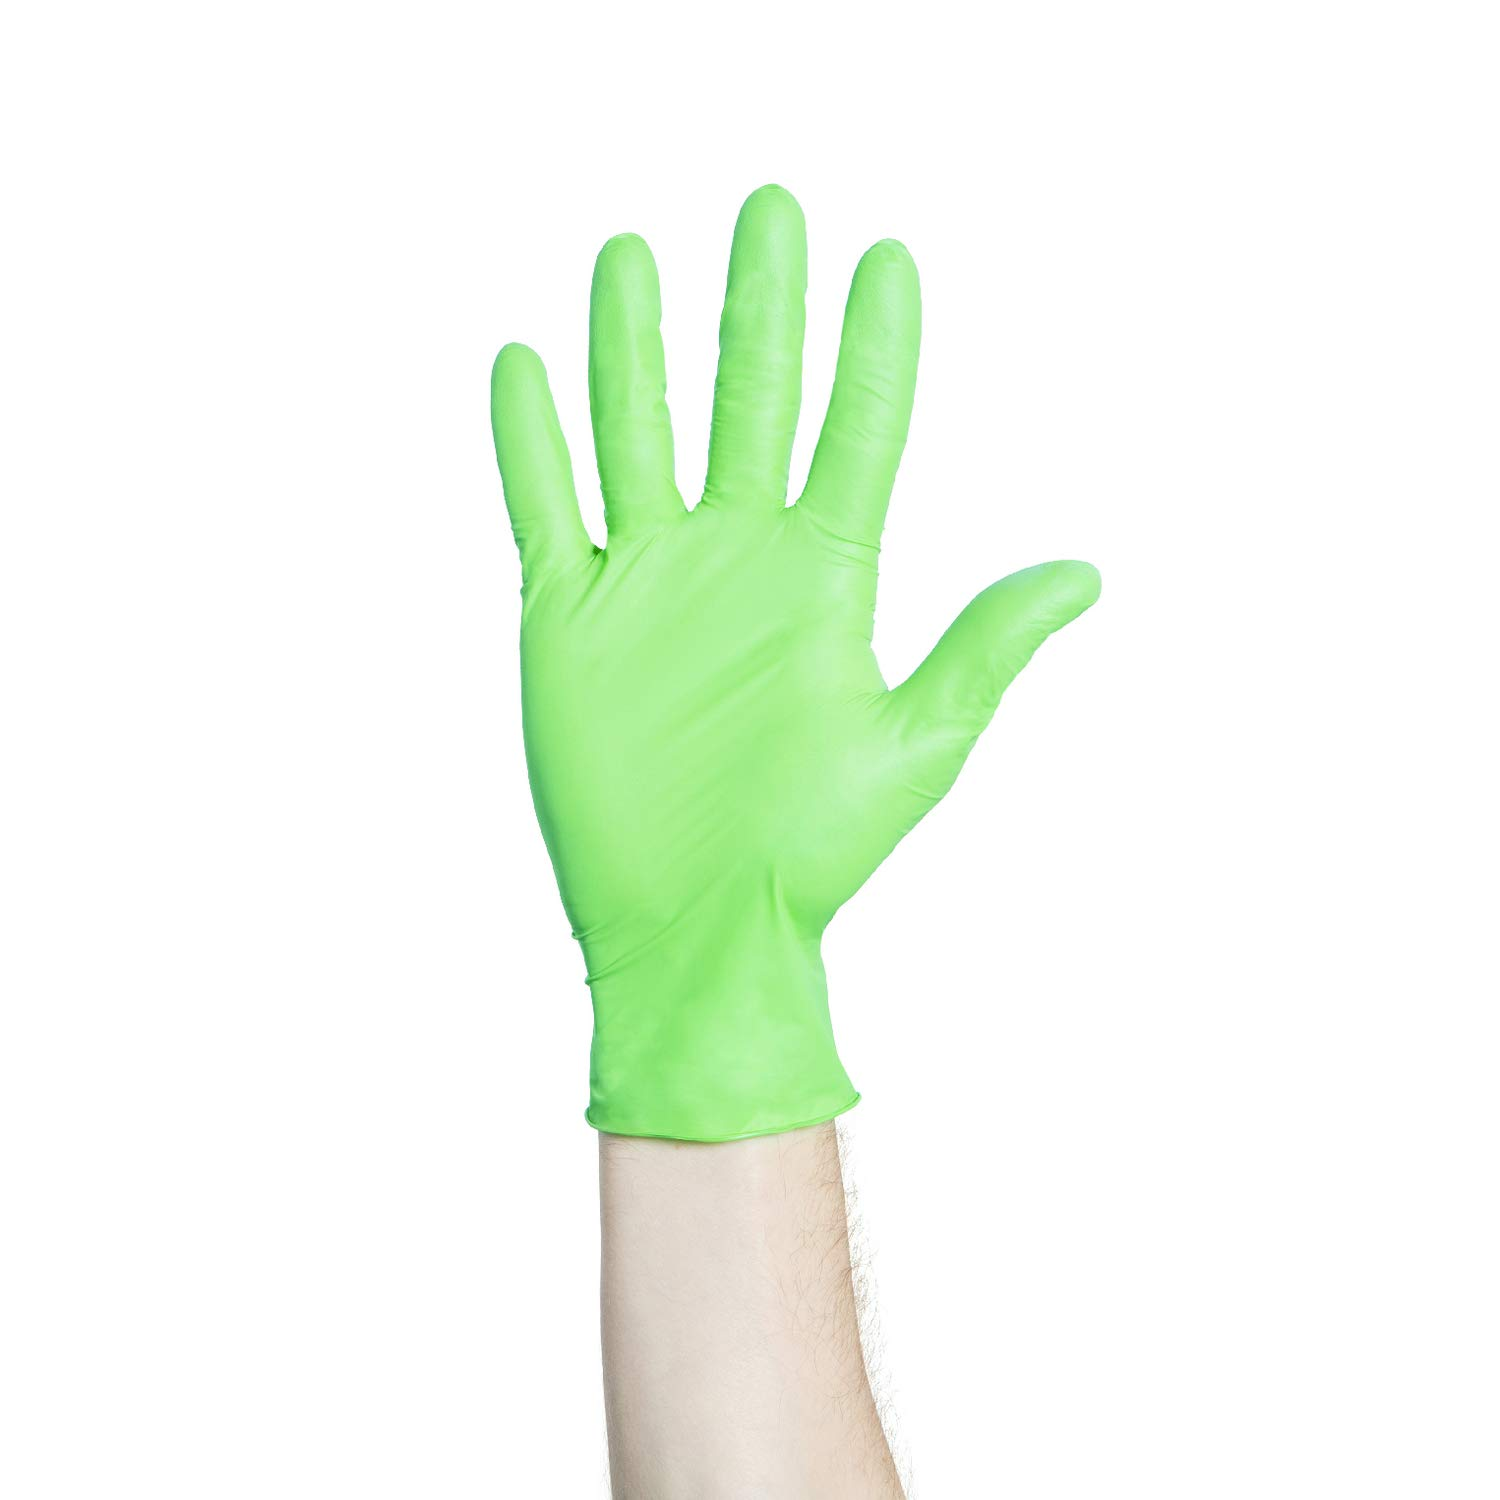 Halyard Flexaprene Green Gloves, Industrial, Food Prep, Cleaning, Powder-Free, 9.5 inch Length, X-Small, 44792 (Box of 200)